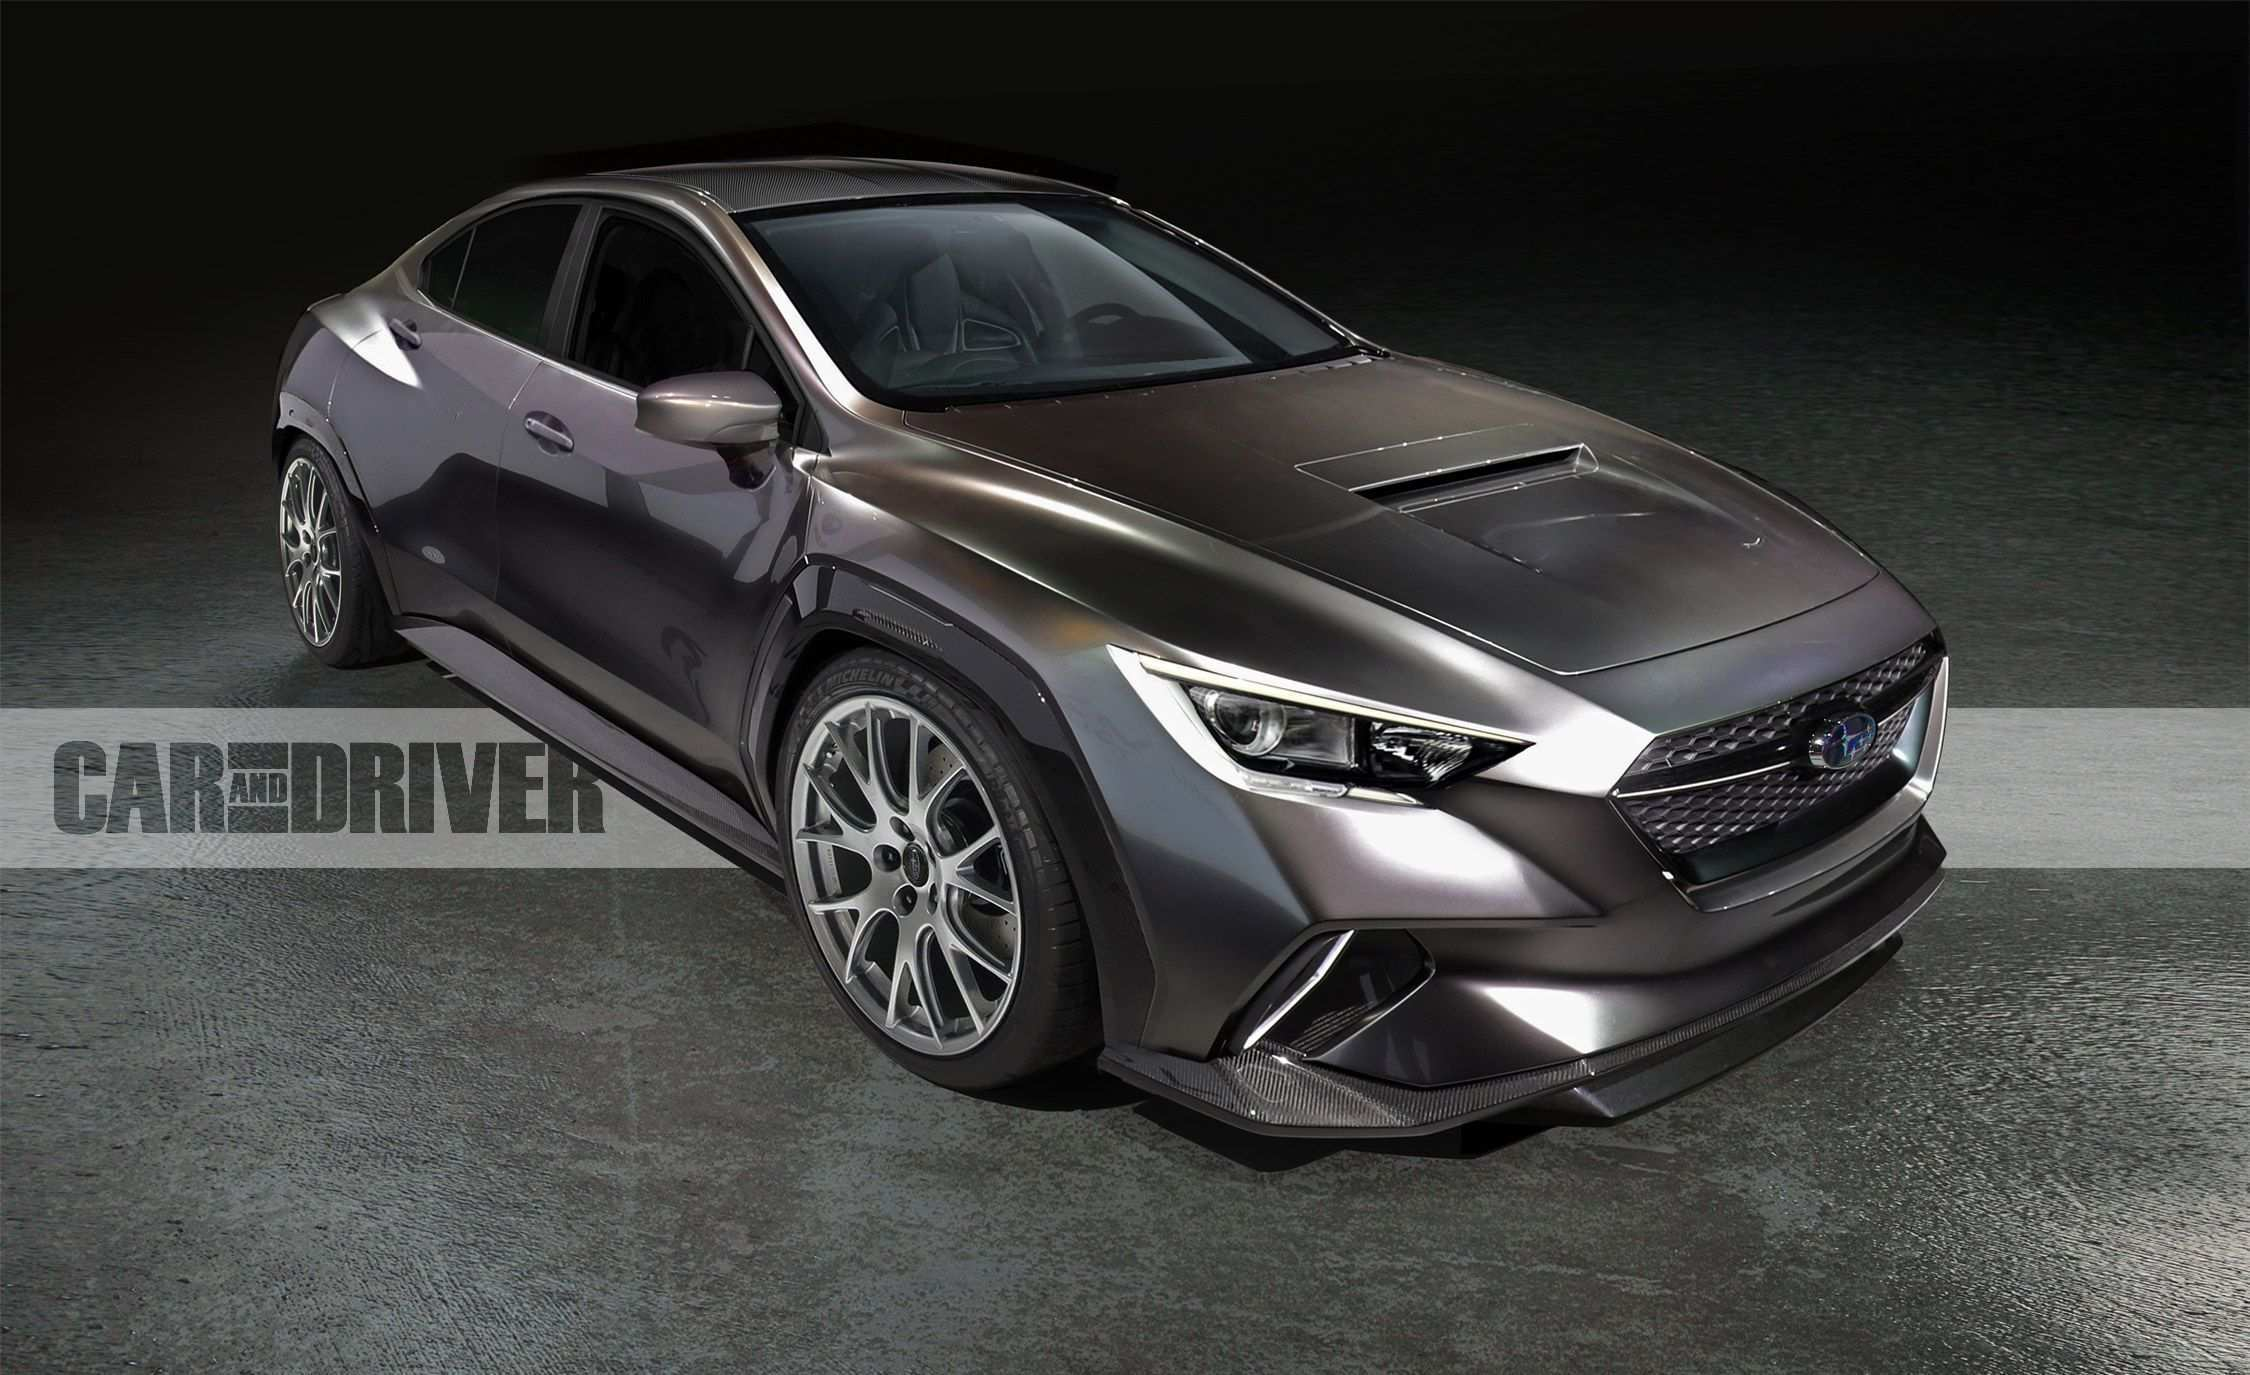 55 Concept of Sti Subaru 2020 First Drive by Sti Subaru 2020